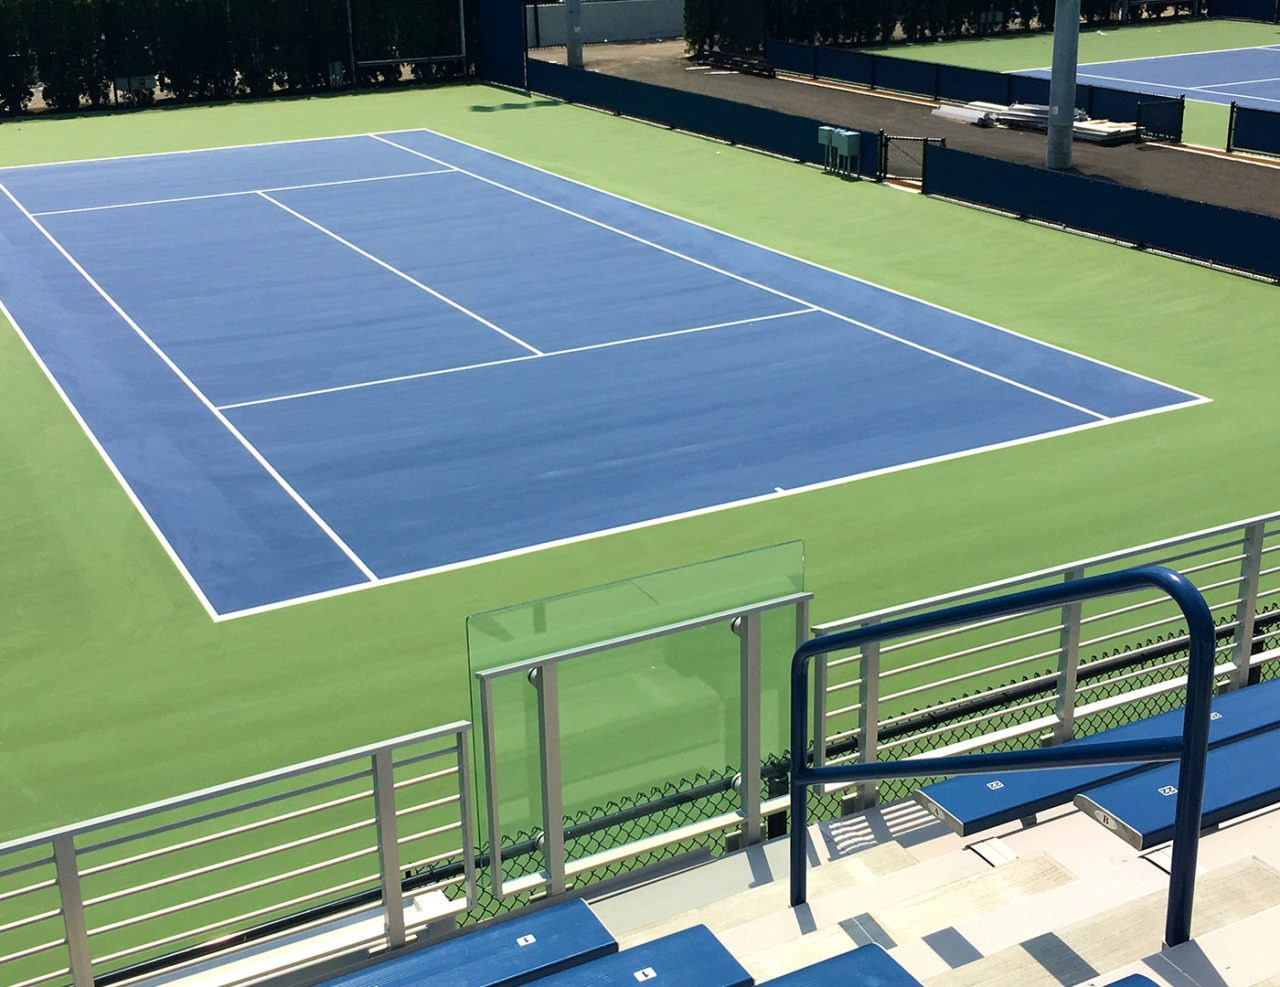 USTA South Campus Renovations